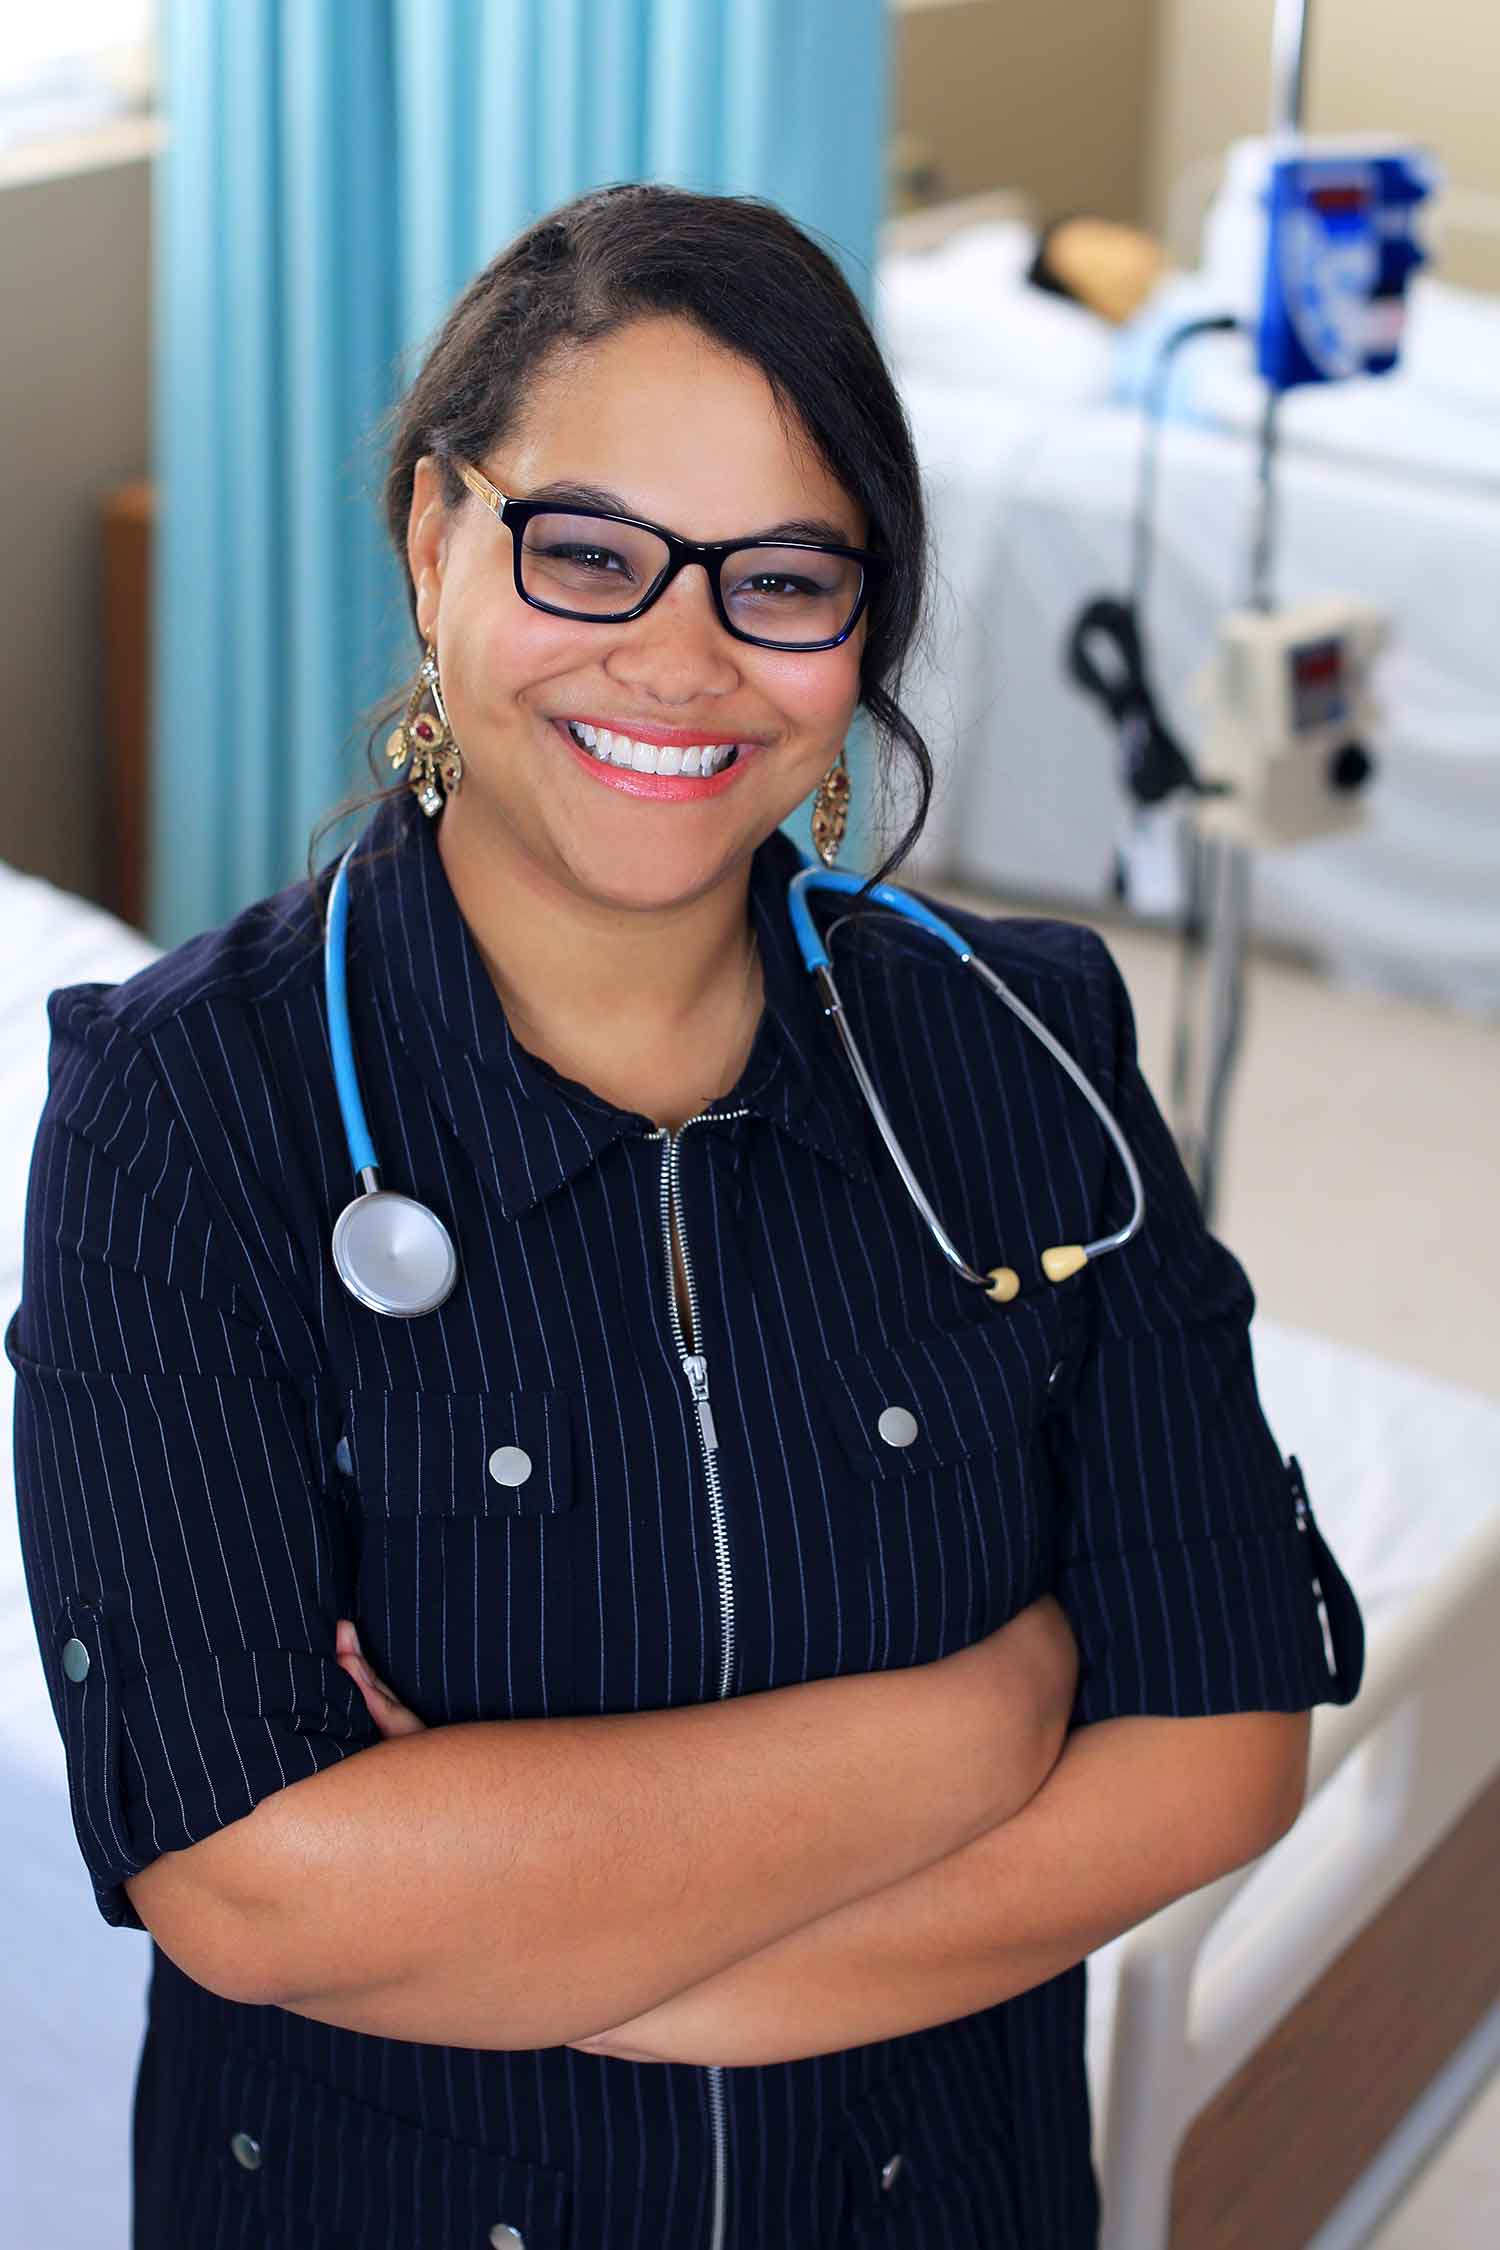 student in nursing uniform